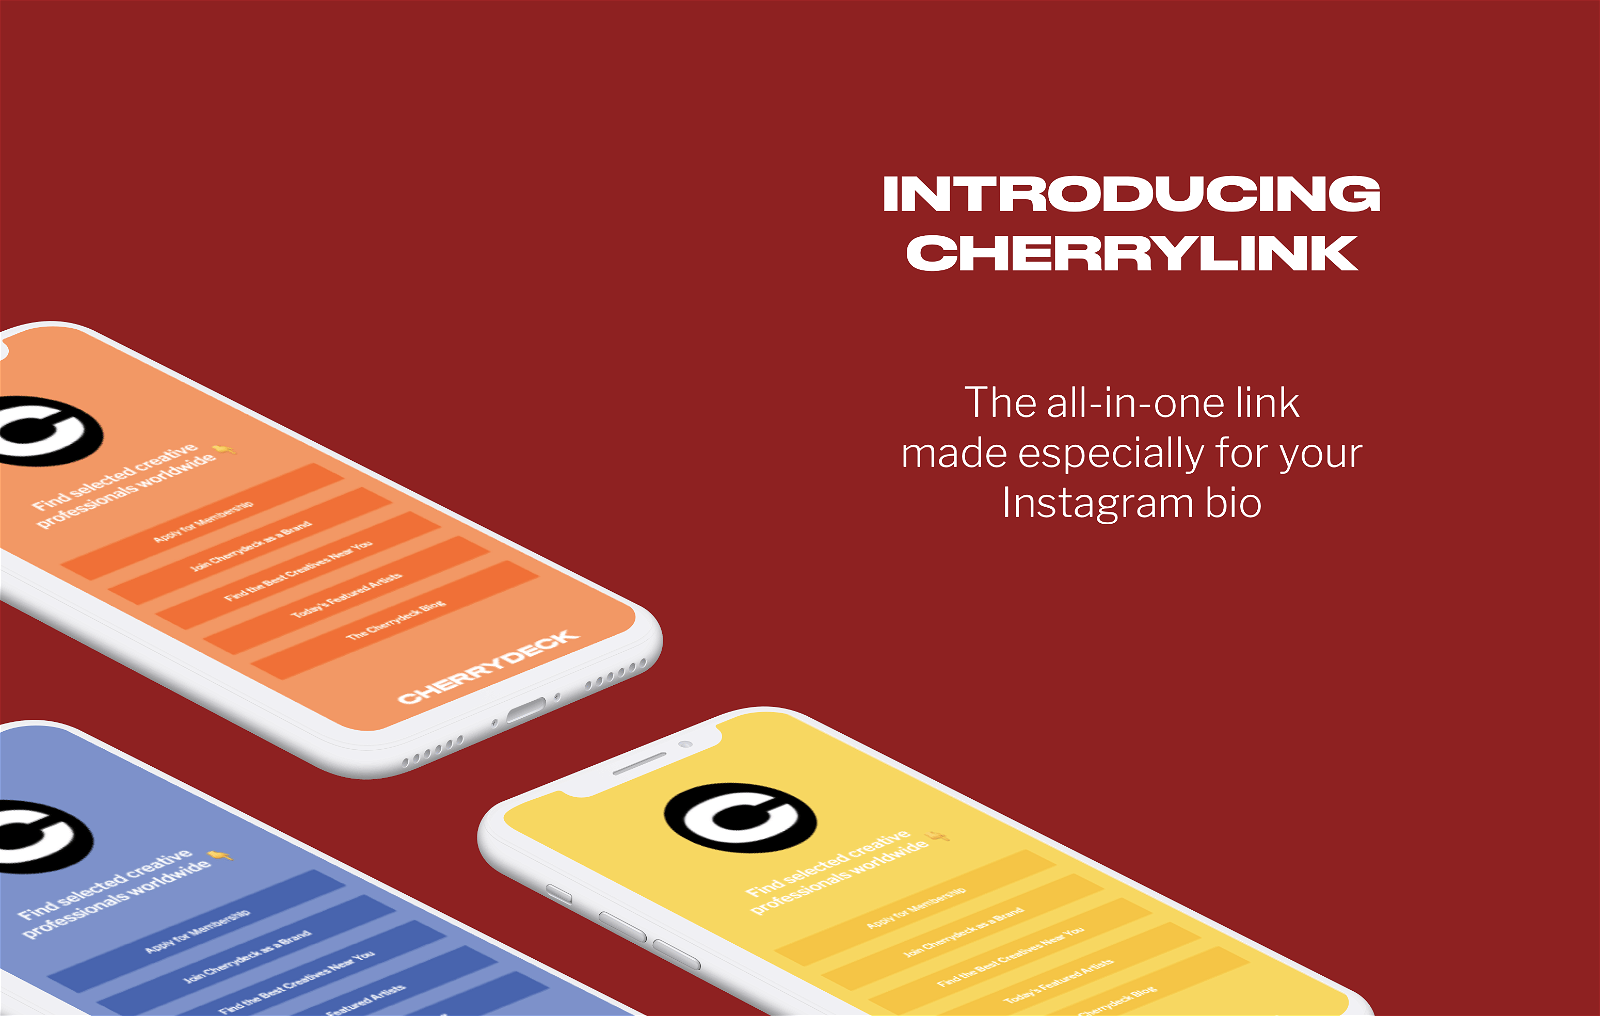 Cherrylink - the all in one link for the Instagram bio